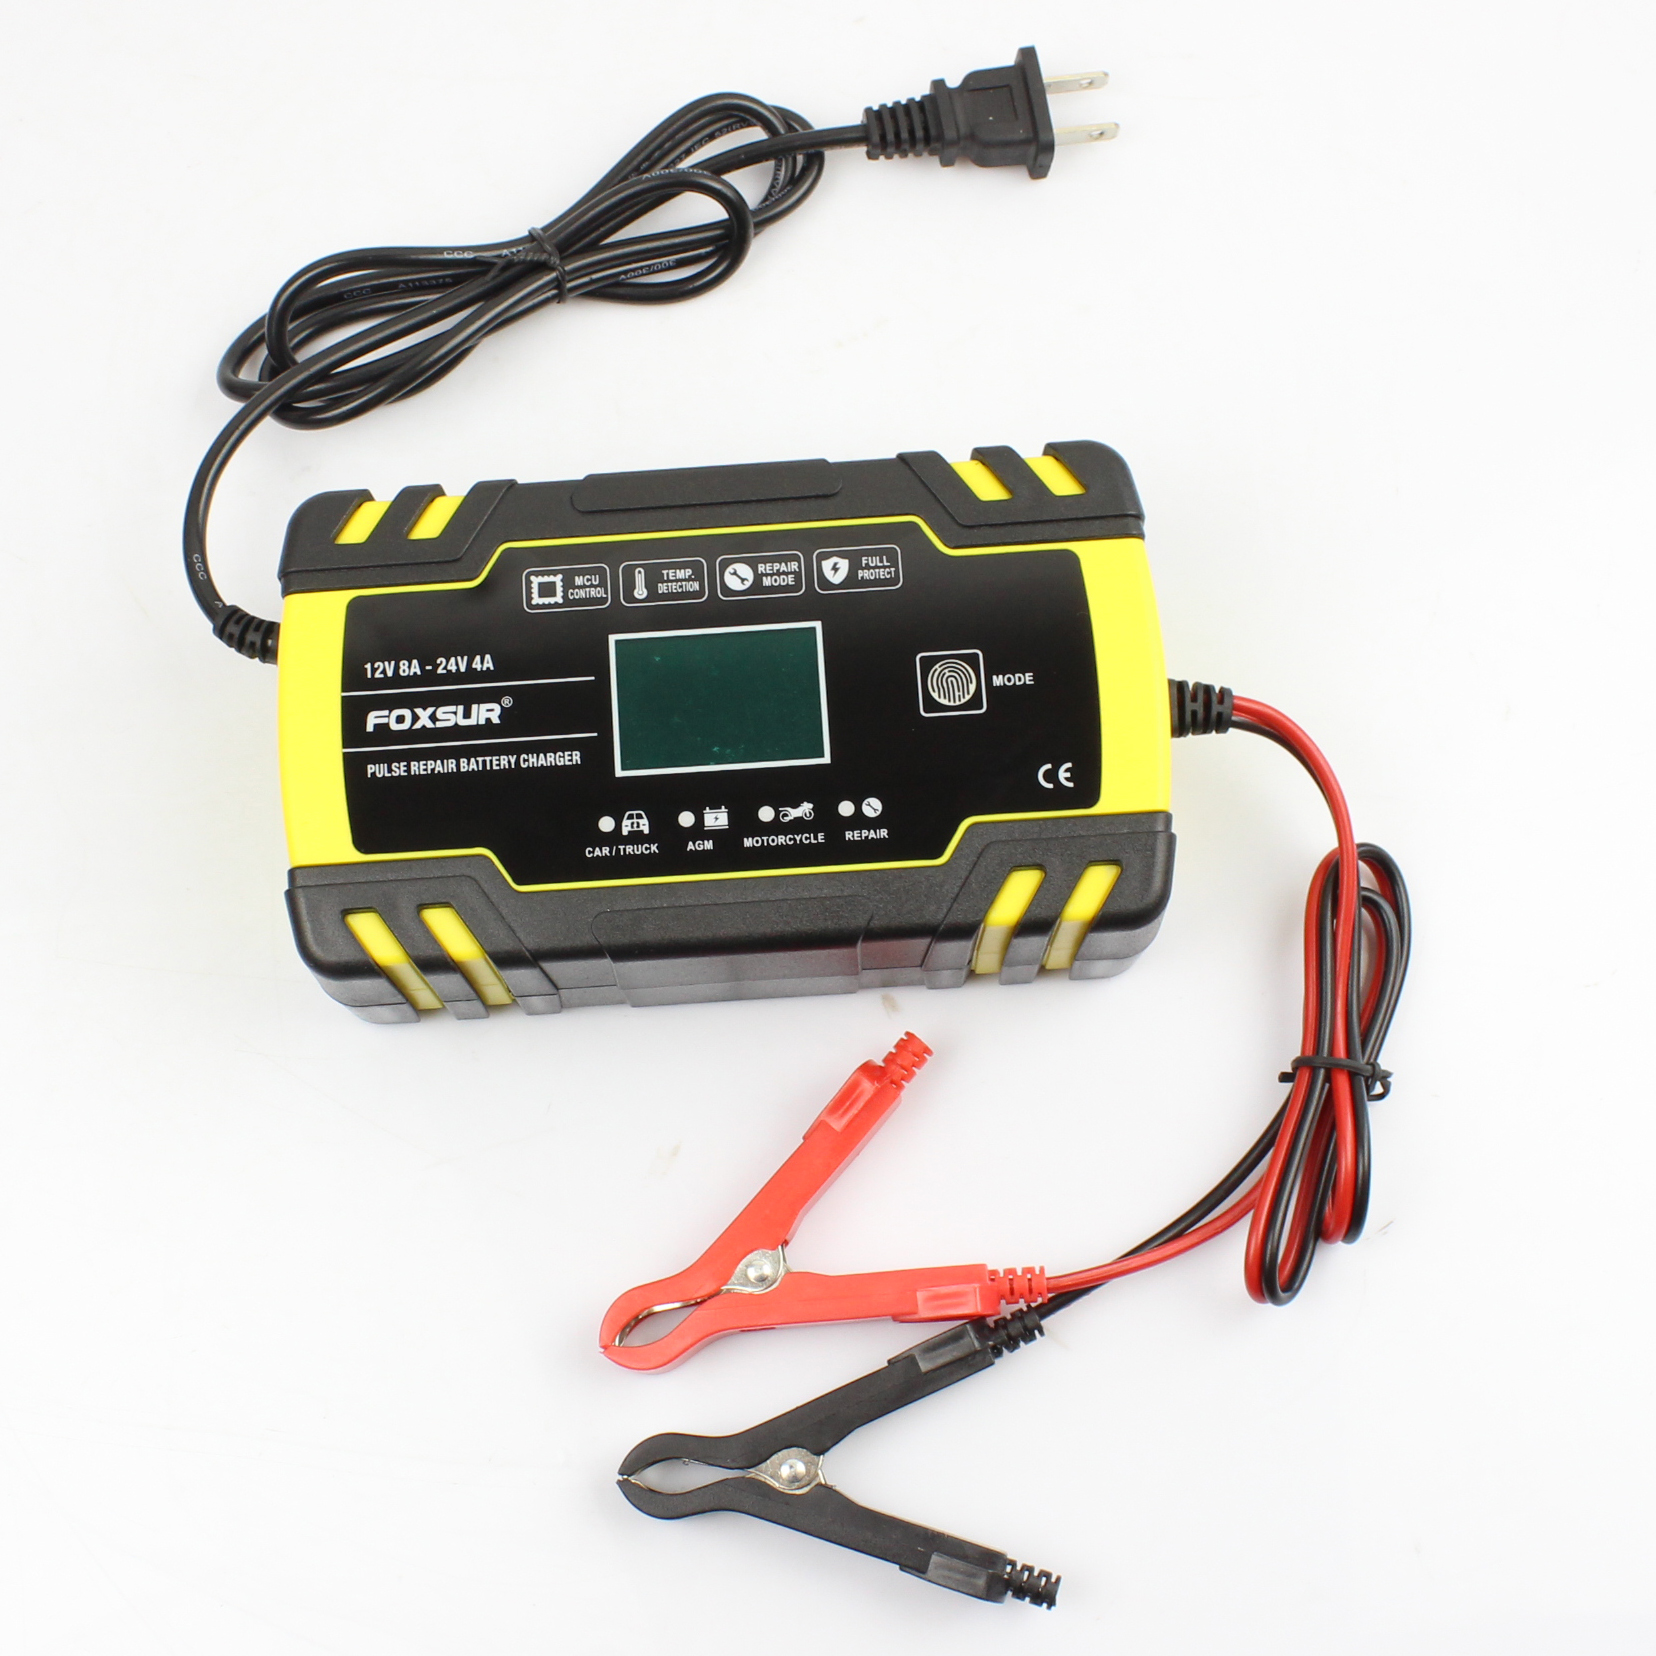 <font><b>FOXSUR</b></font> 12V 8A 24V 4A 3-stage Smart <font><b>Battery</b></font> <font><b>Charger</b></font>, 12V 24V EFB GEL AGM WET <font><b>Car</b></font> <font><b>Battery</b></font> <font><b>Charger</b></font> with LCD display & Desulfator image